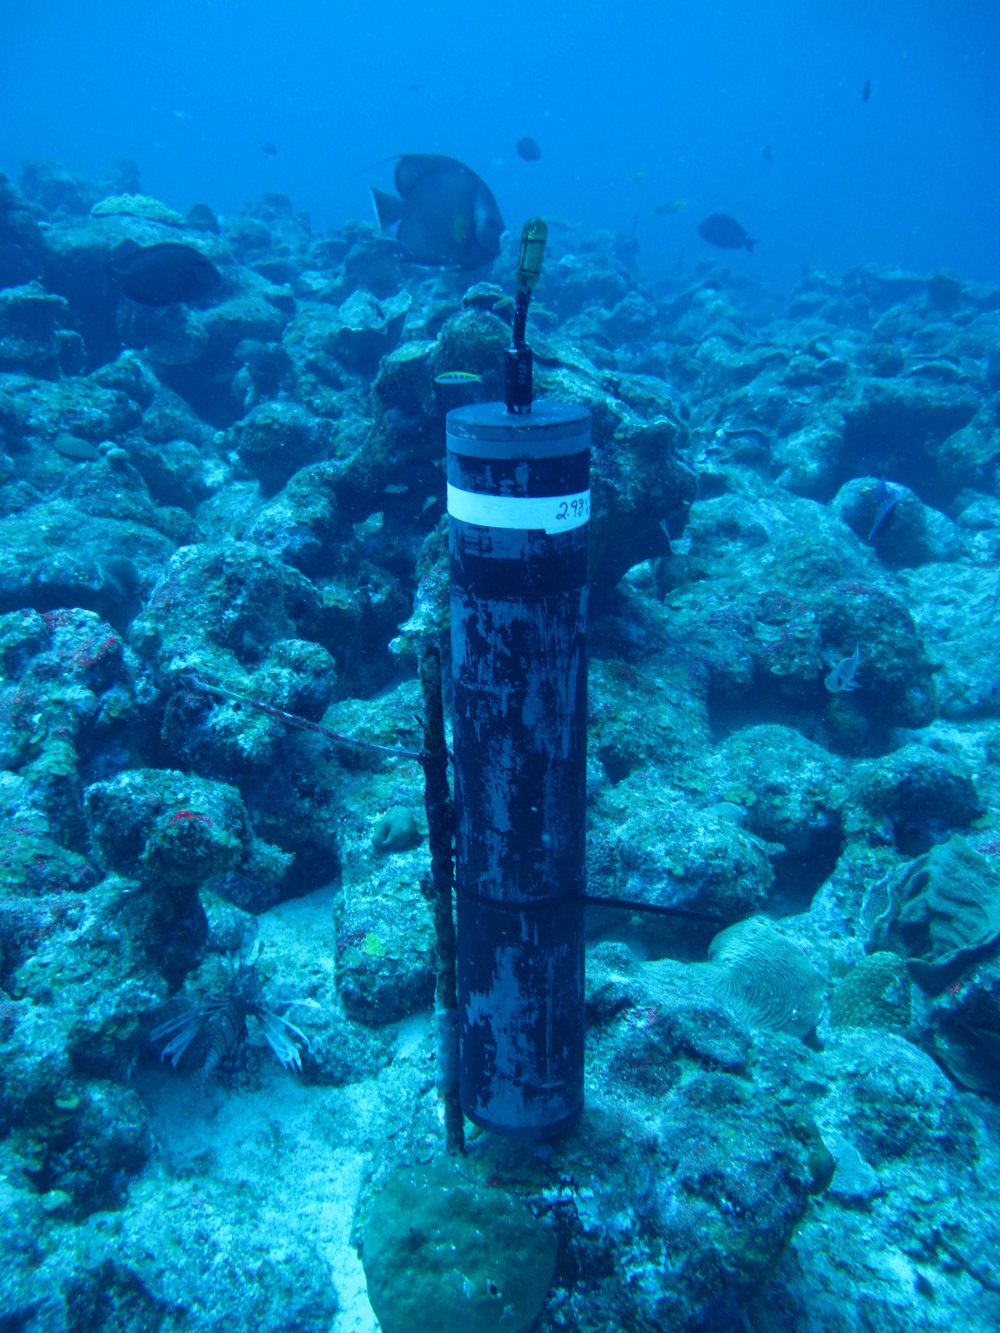 Seen here, a hydrophone is attached to the ocean floor.